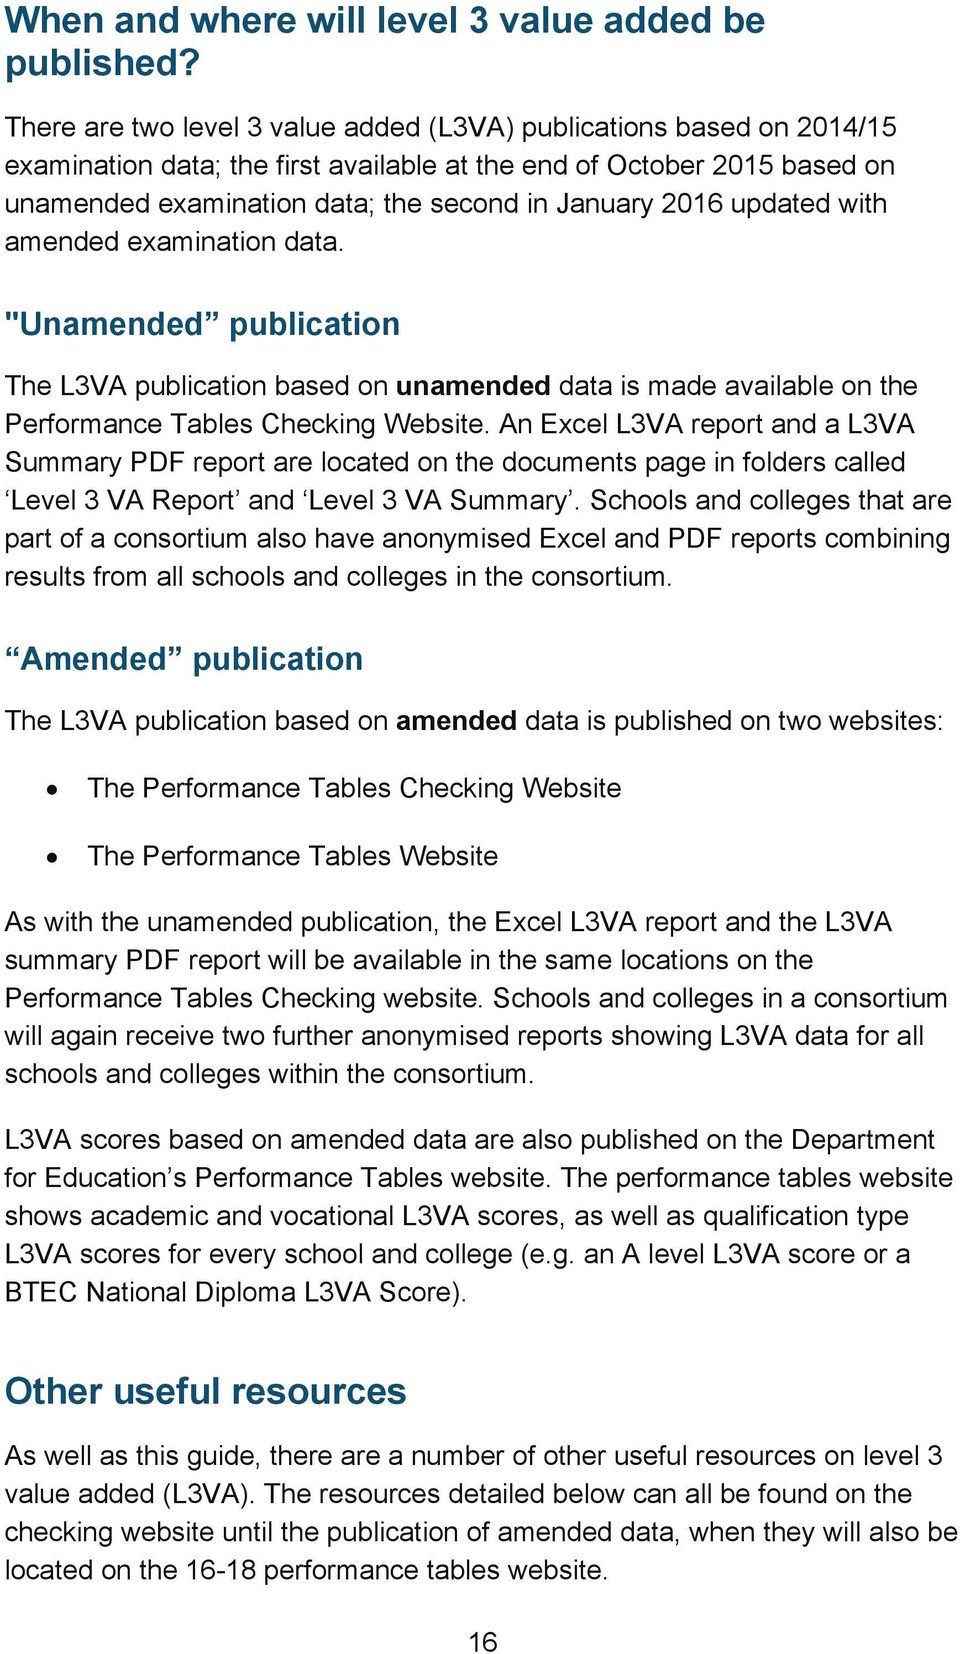 "updated with amended examination data. ""Unamended publication The L3VA publication based on unamended data is made available on the Performance Tables Checking Website."